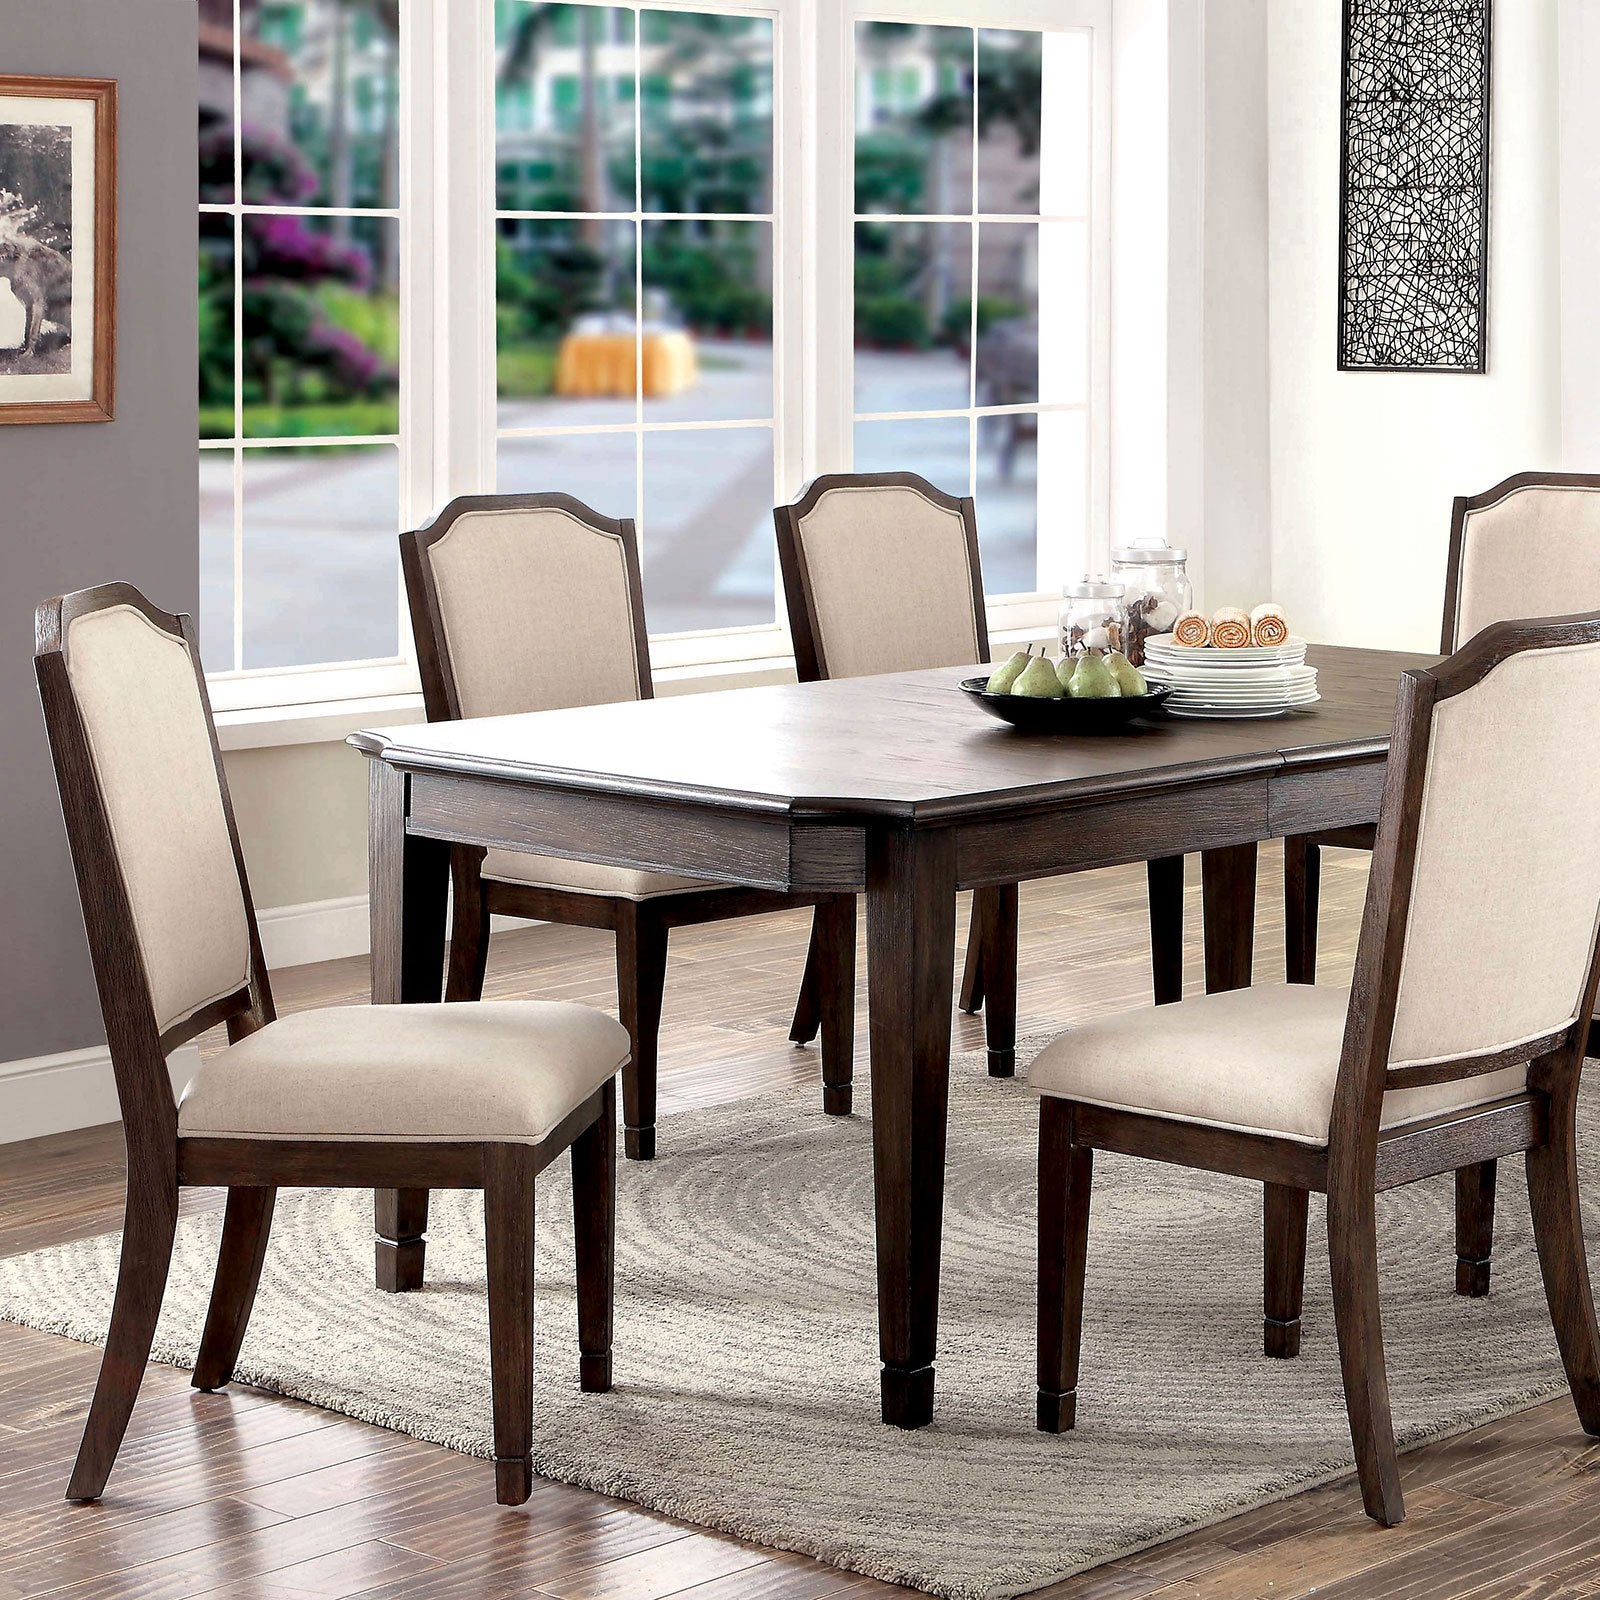 HAYLEE Transitional Dining Table - InteriorDesignsToGo.com